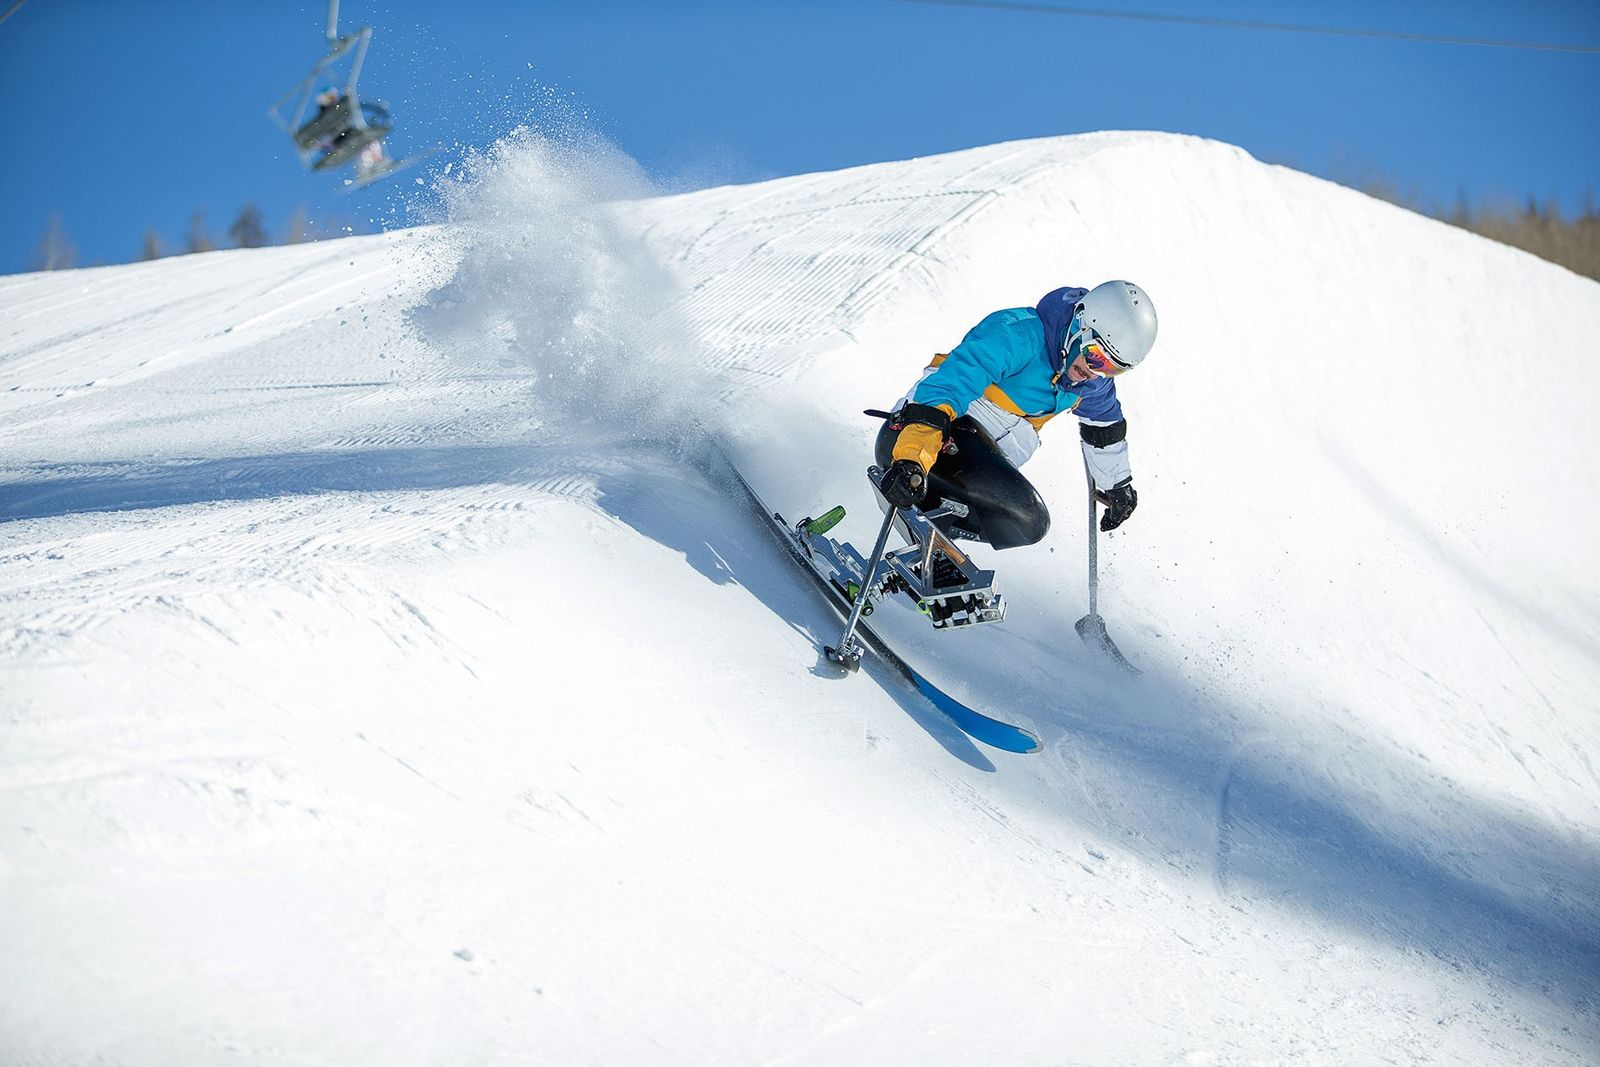 Accessible skier skiing down mountainside